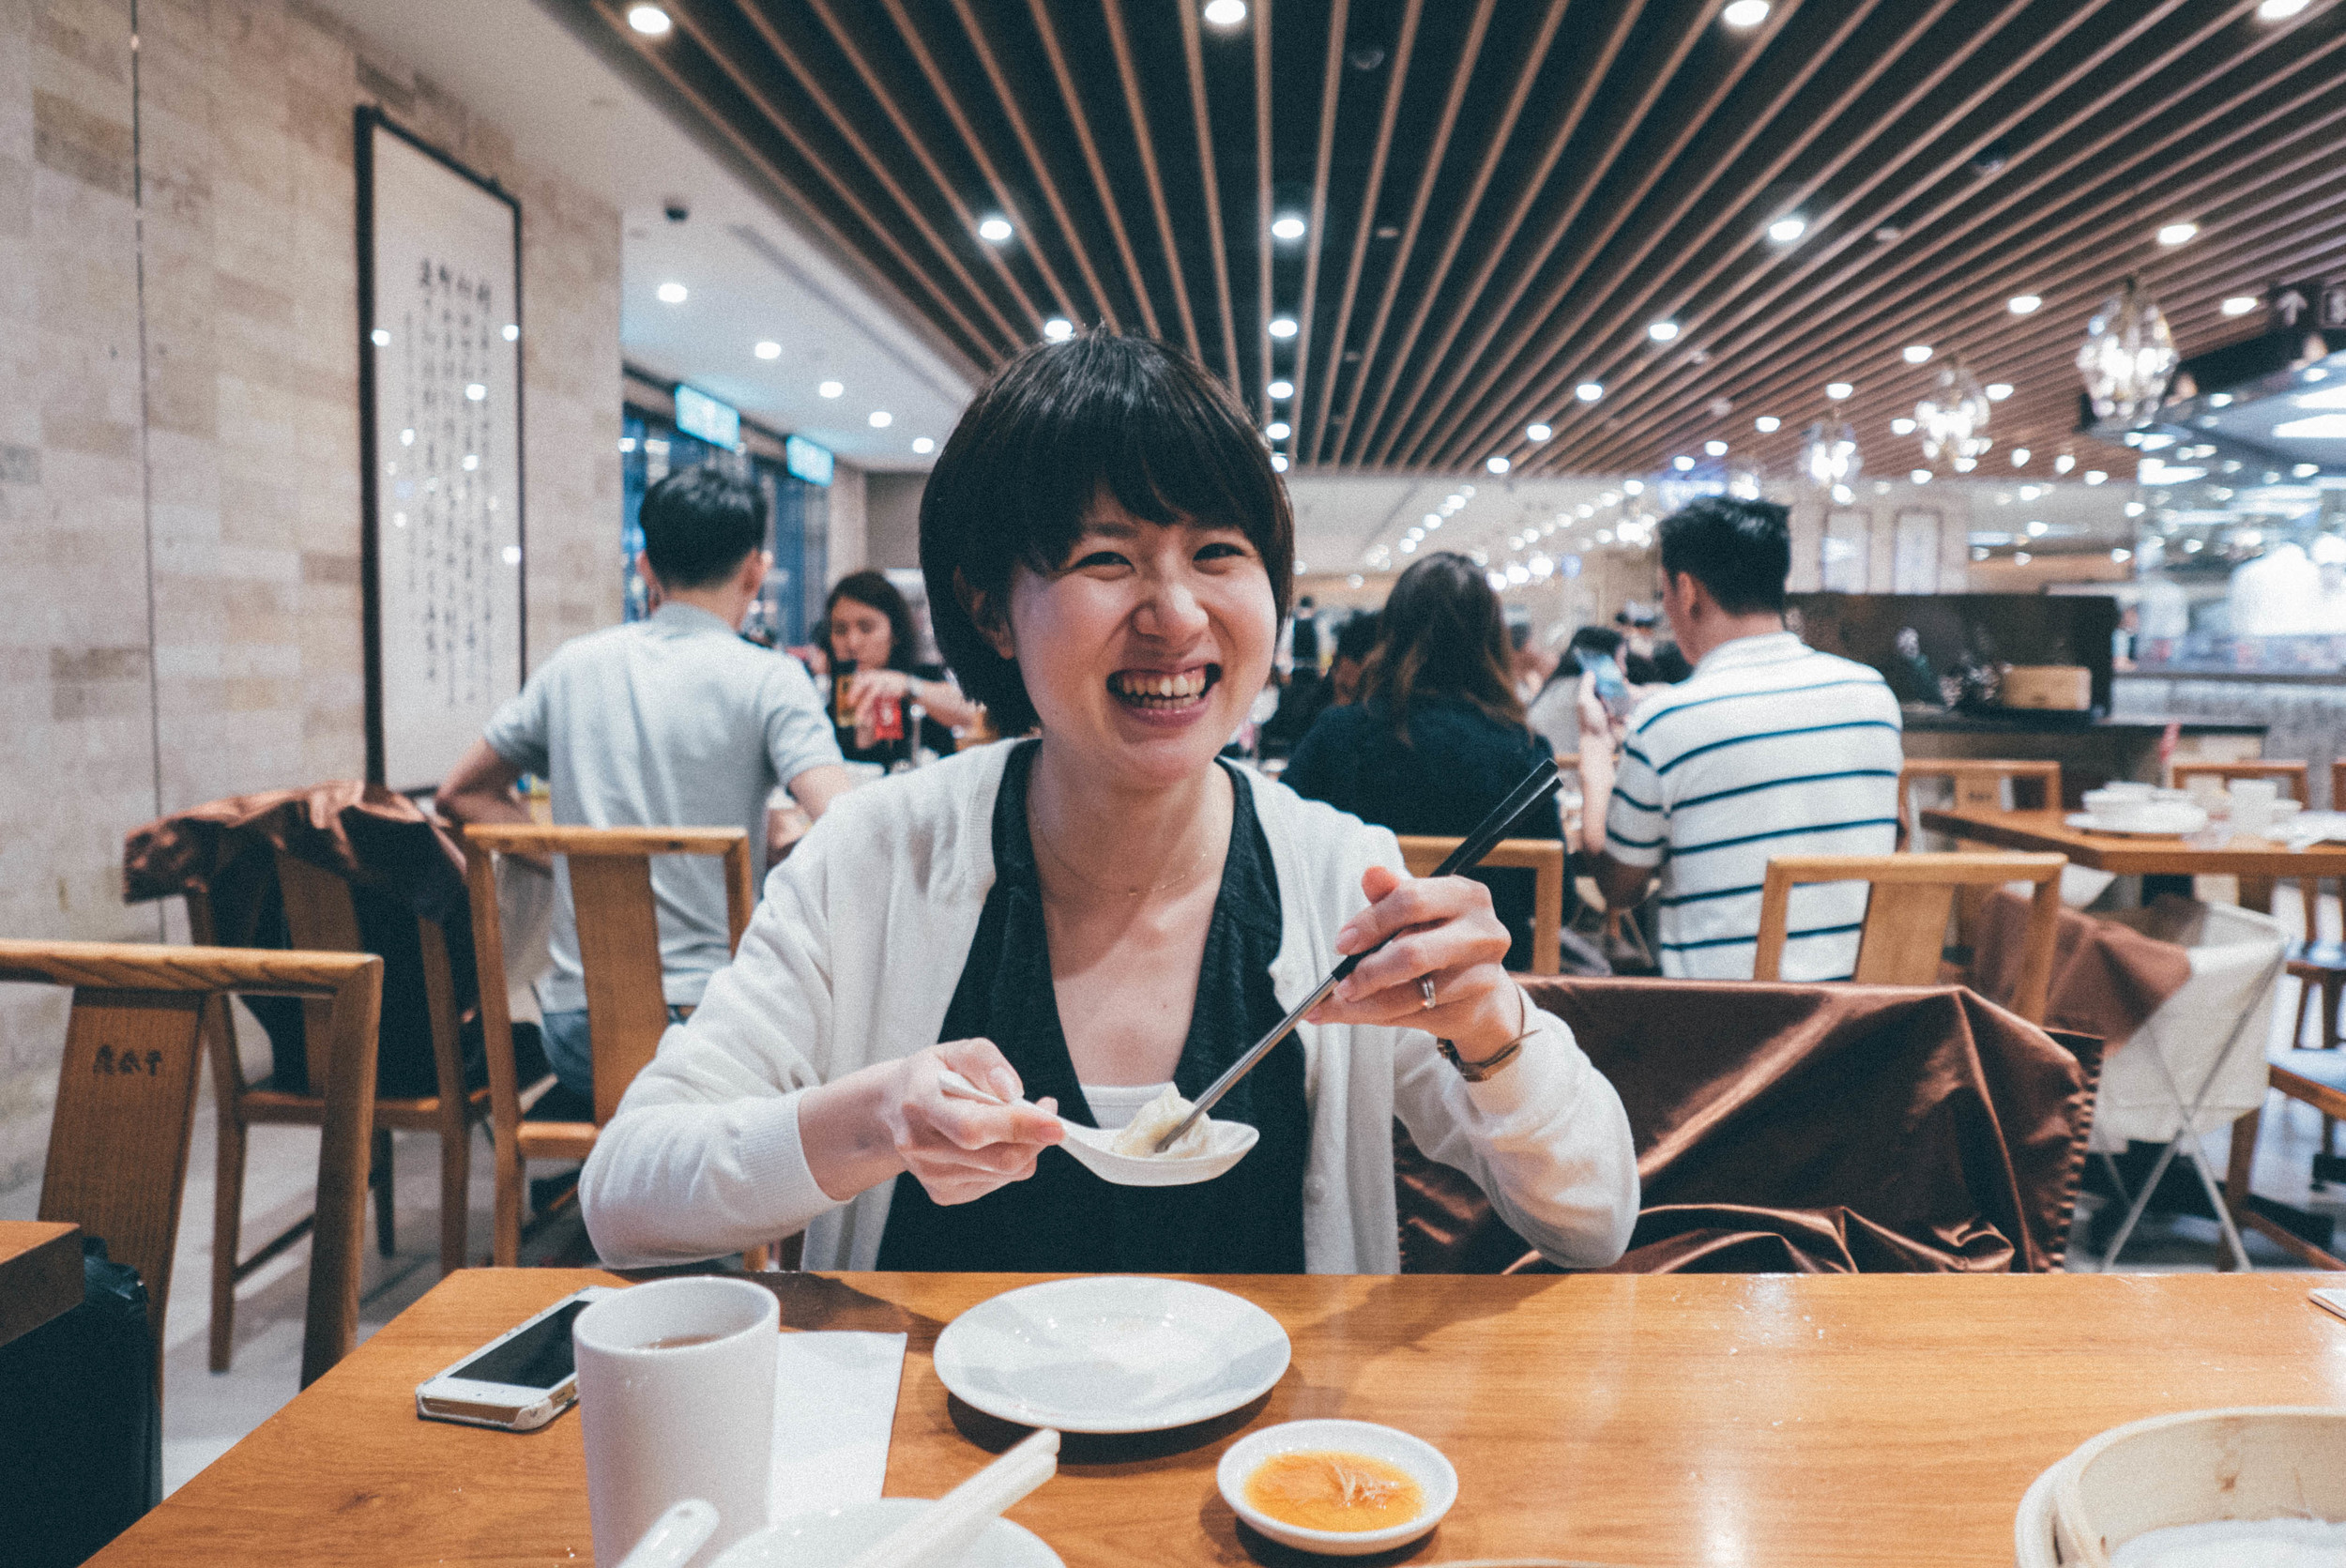 Dumplings at Din Tai Fung | blossomlnk.me by @0oyukao0